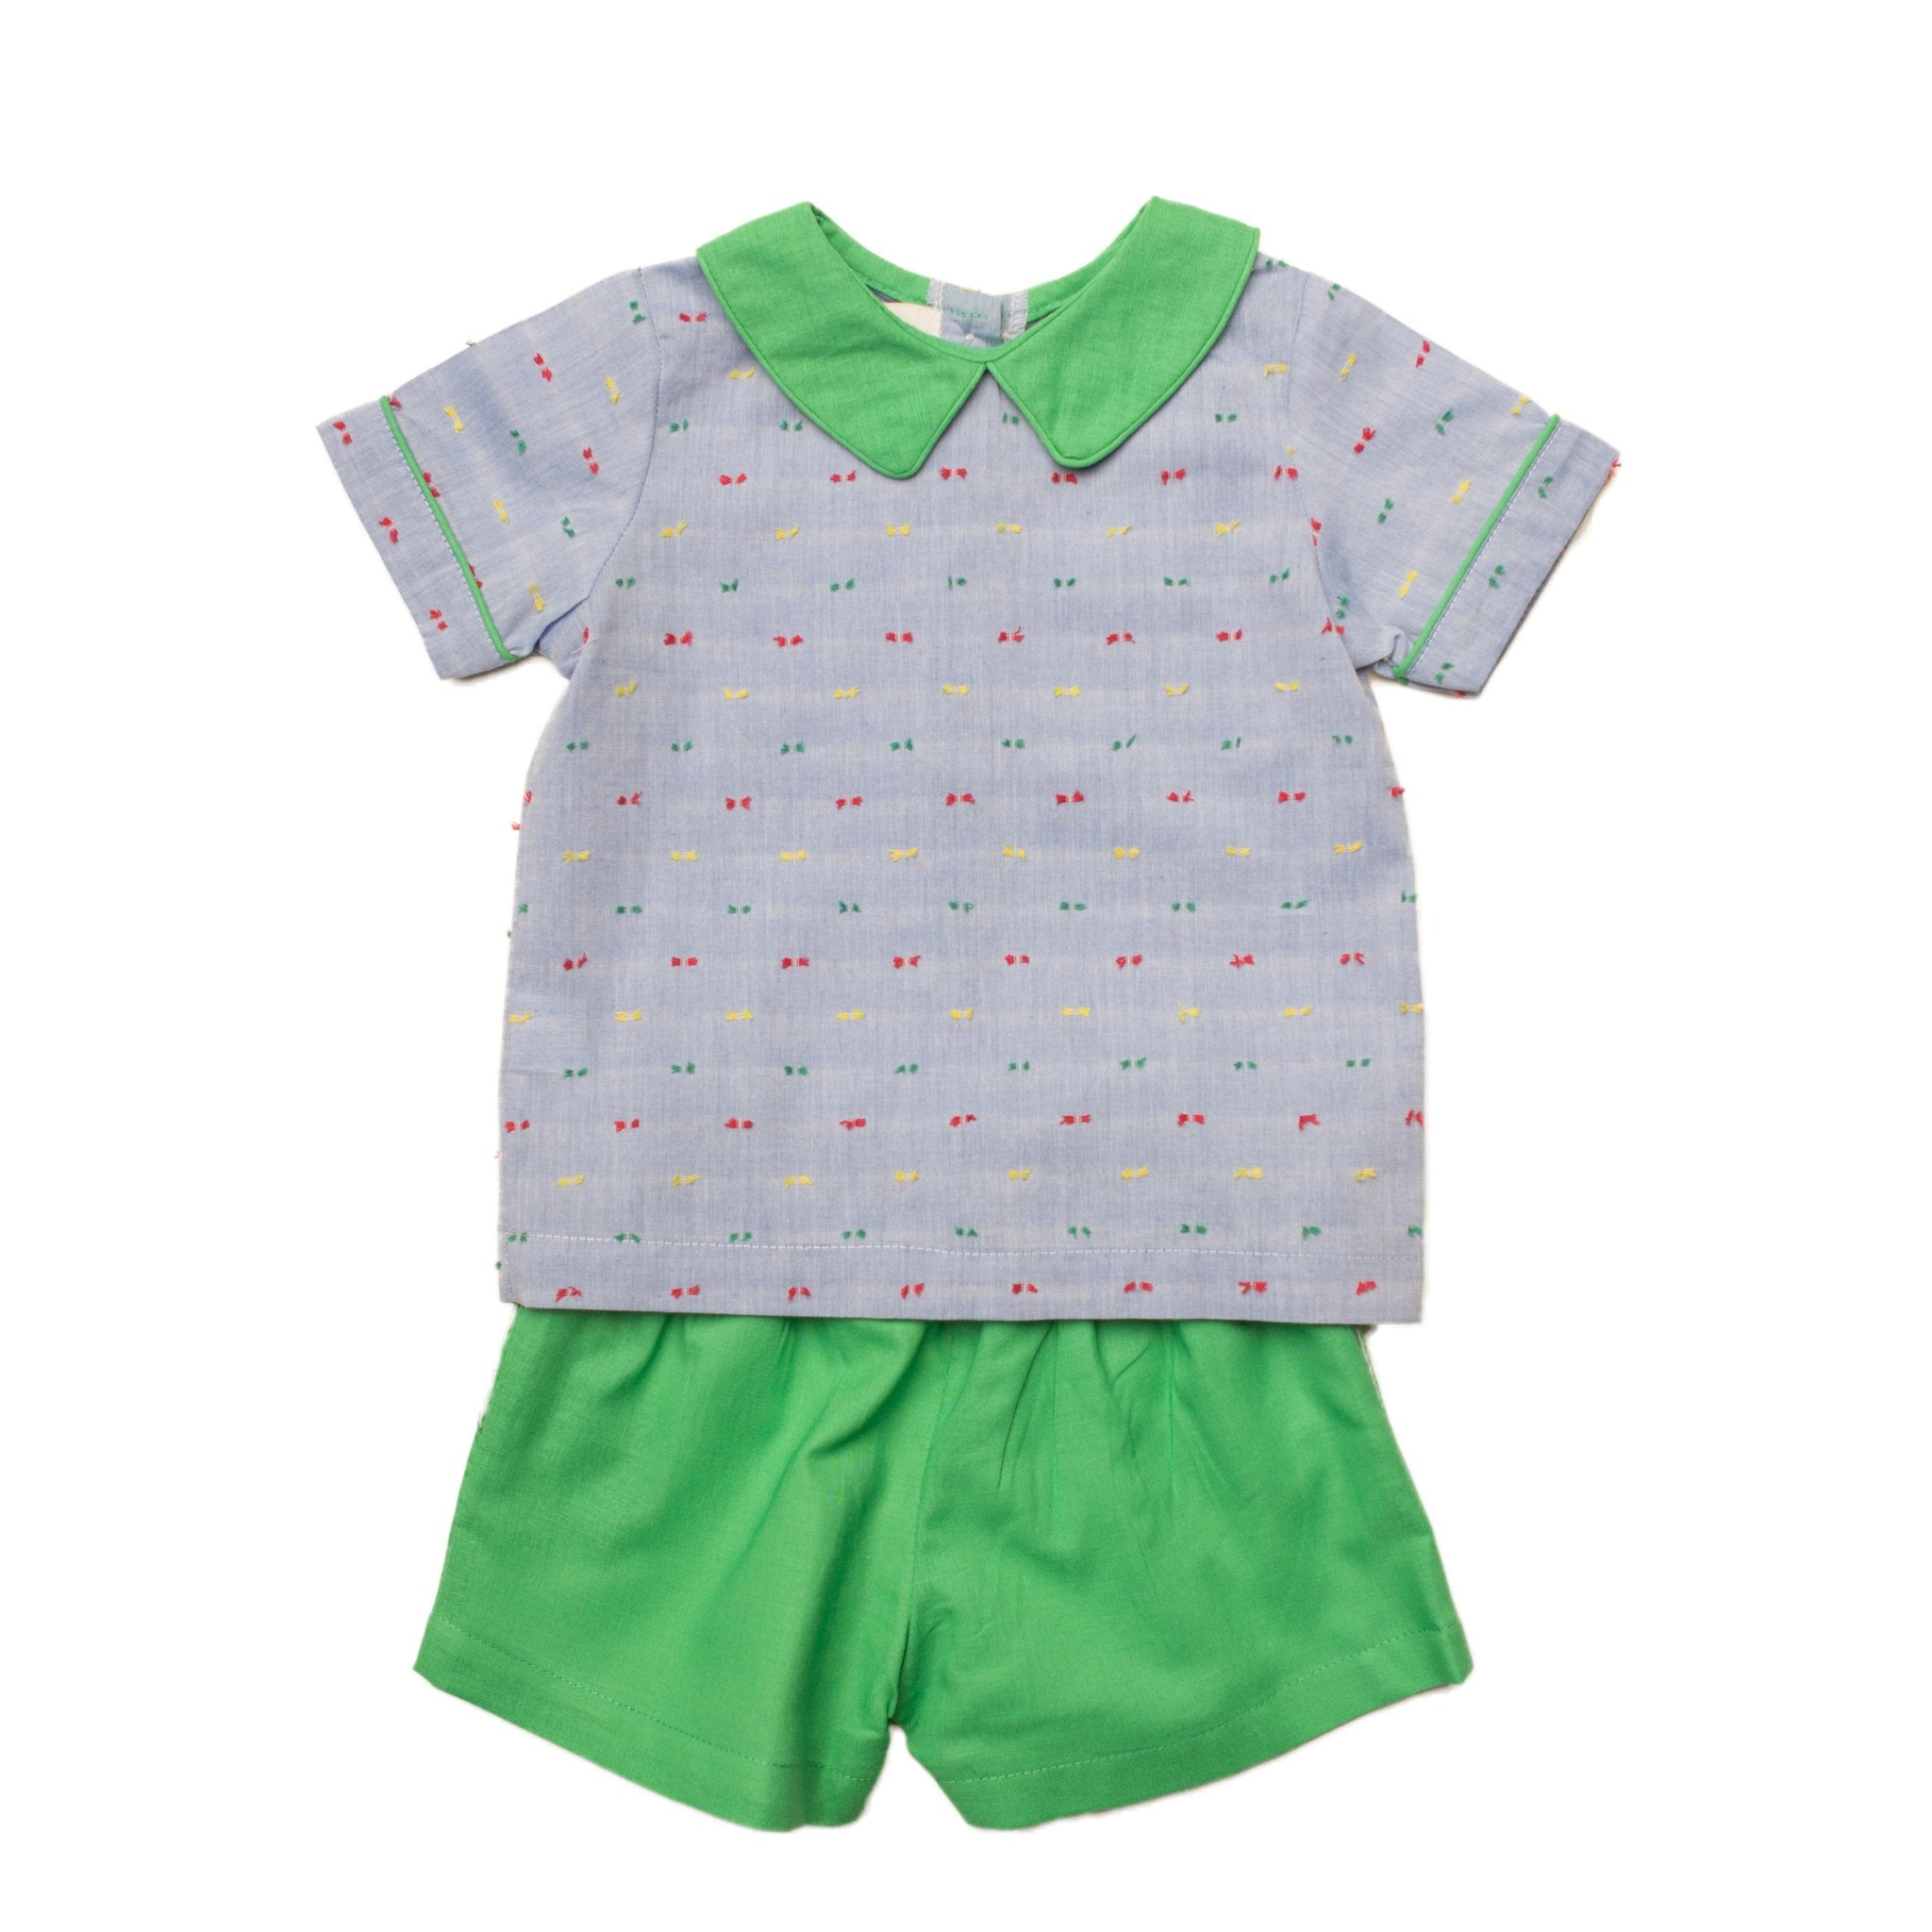 Oaks Apparel Browning Chambray Swiss Dot w/ Green Short Set - Noa & Vivi Kids Apparel